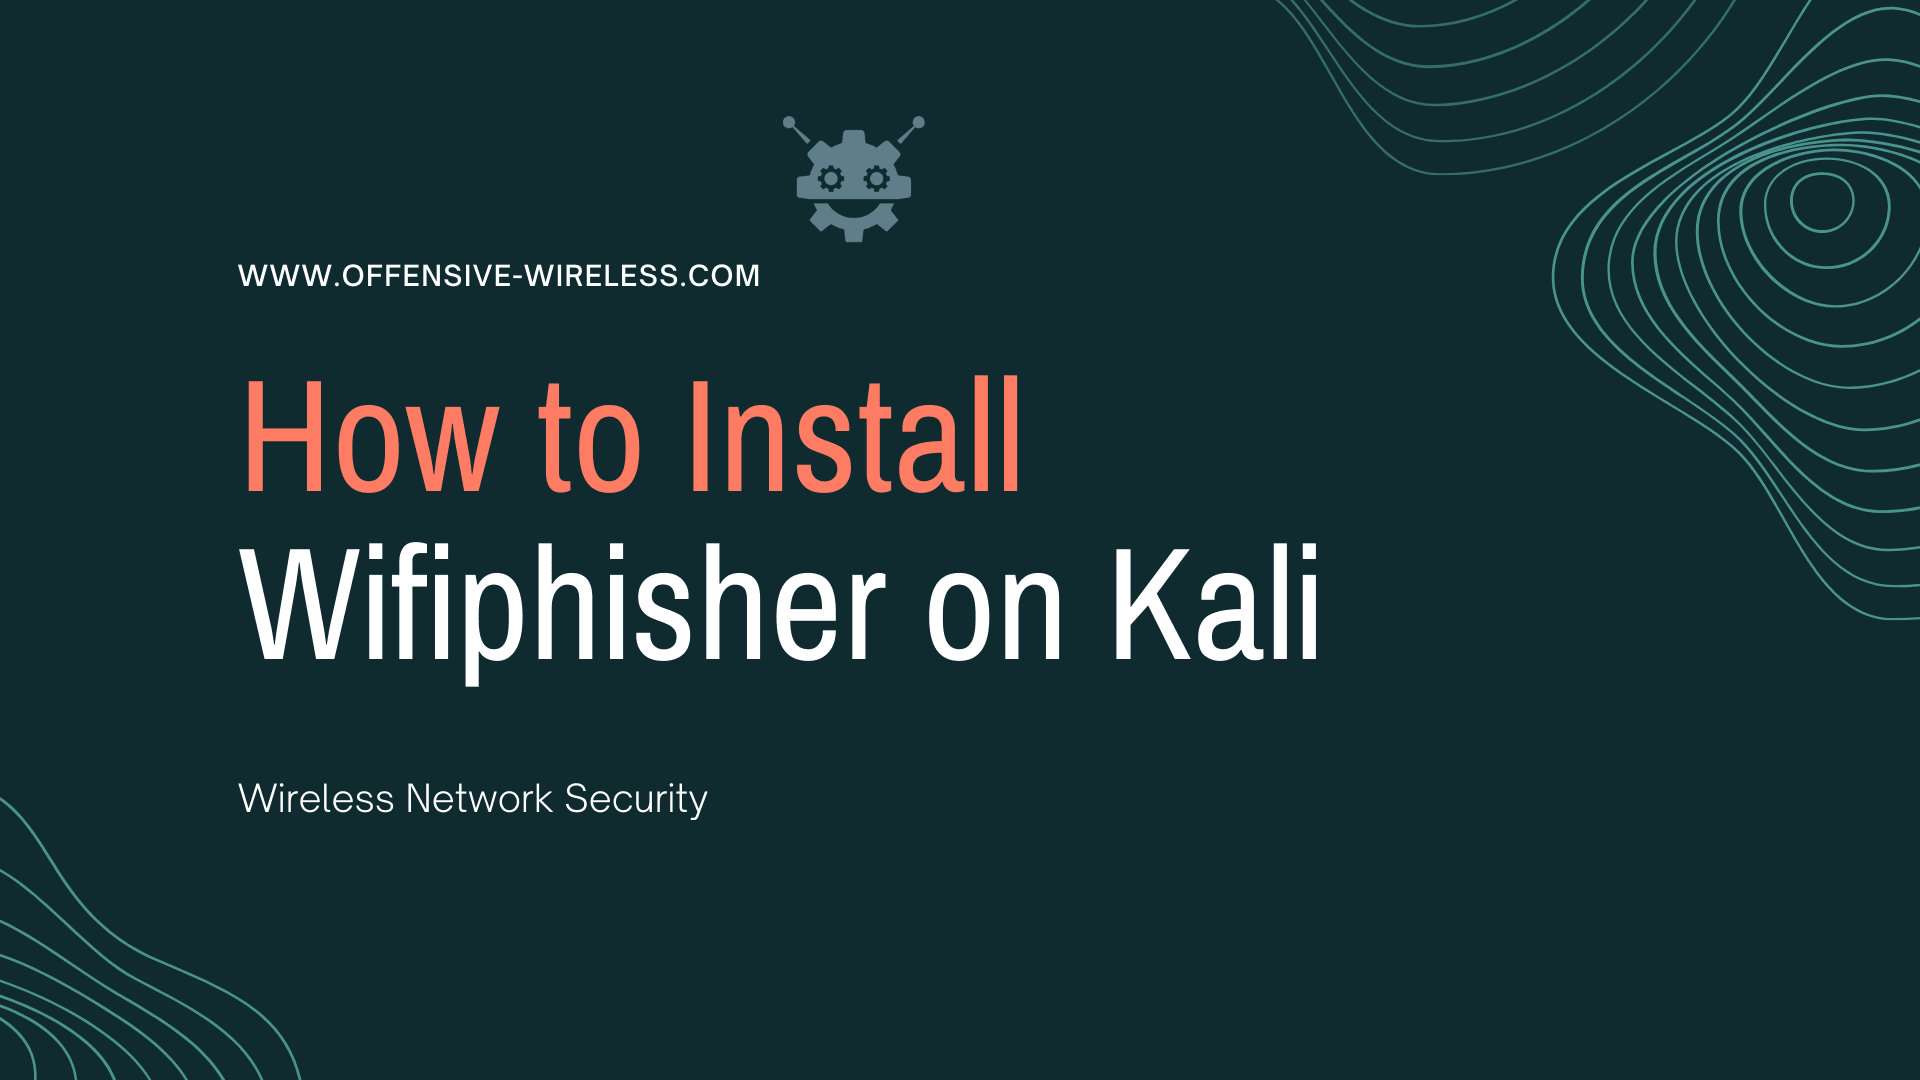 How to Install Wifiphisher on Kali